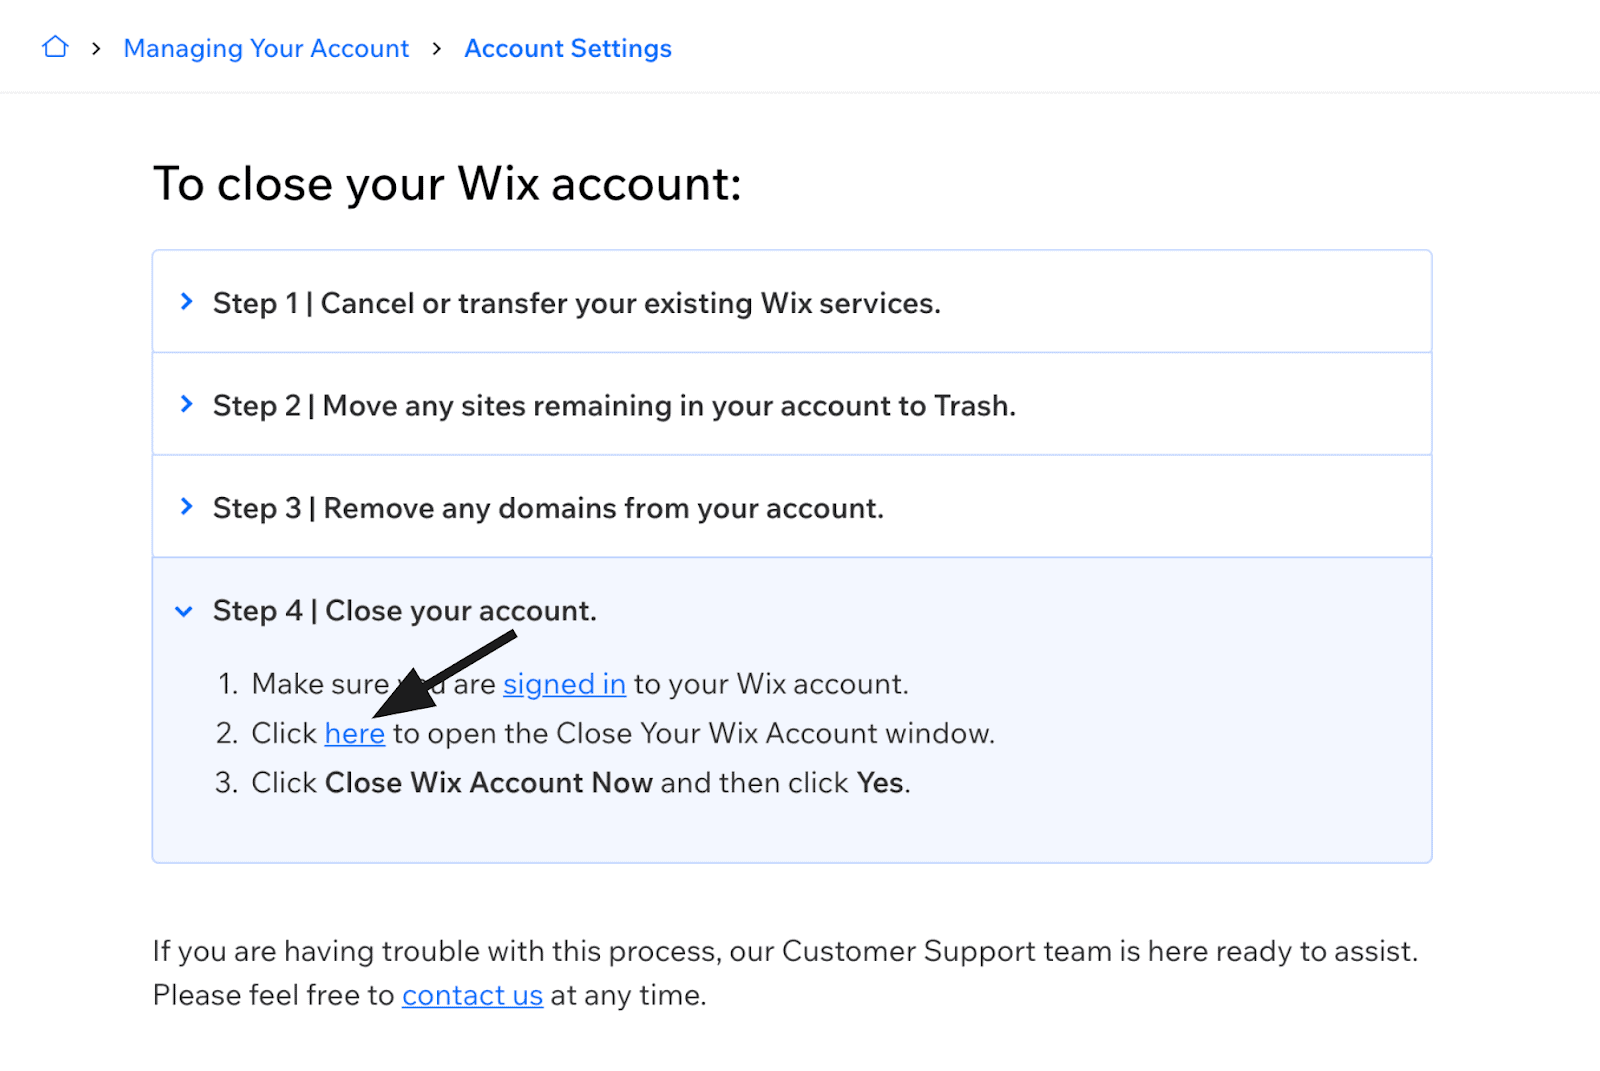 Wix - Close Your Wix Account window